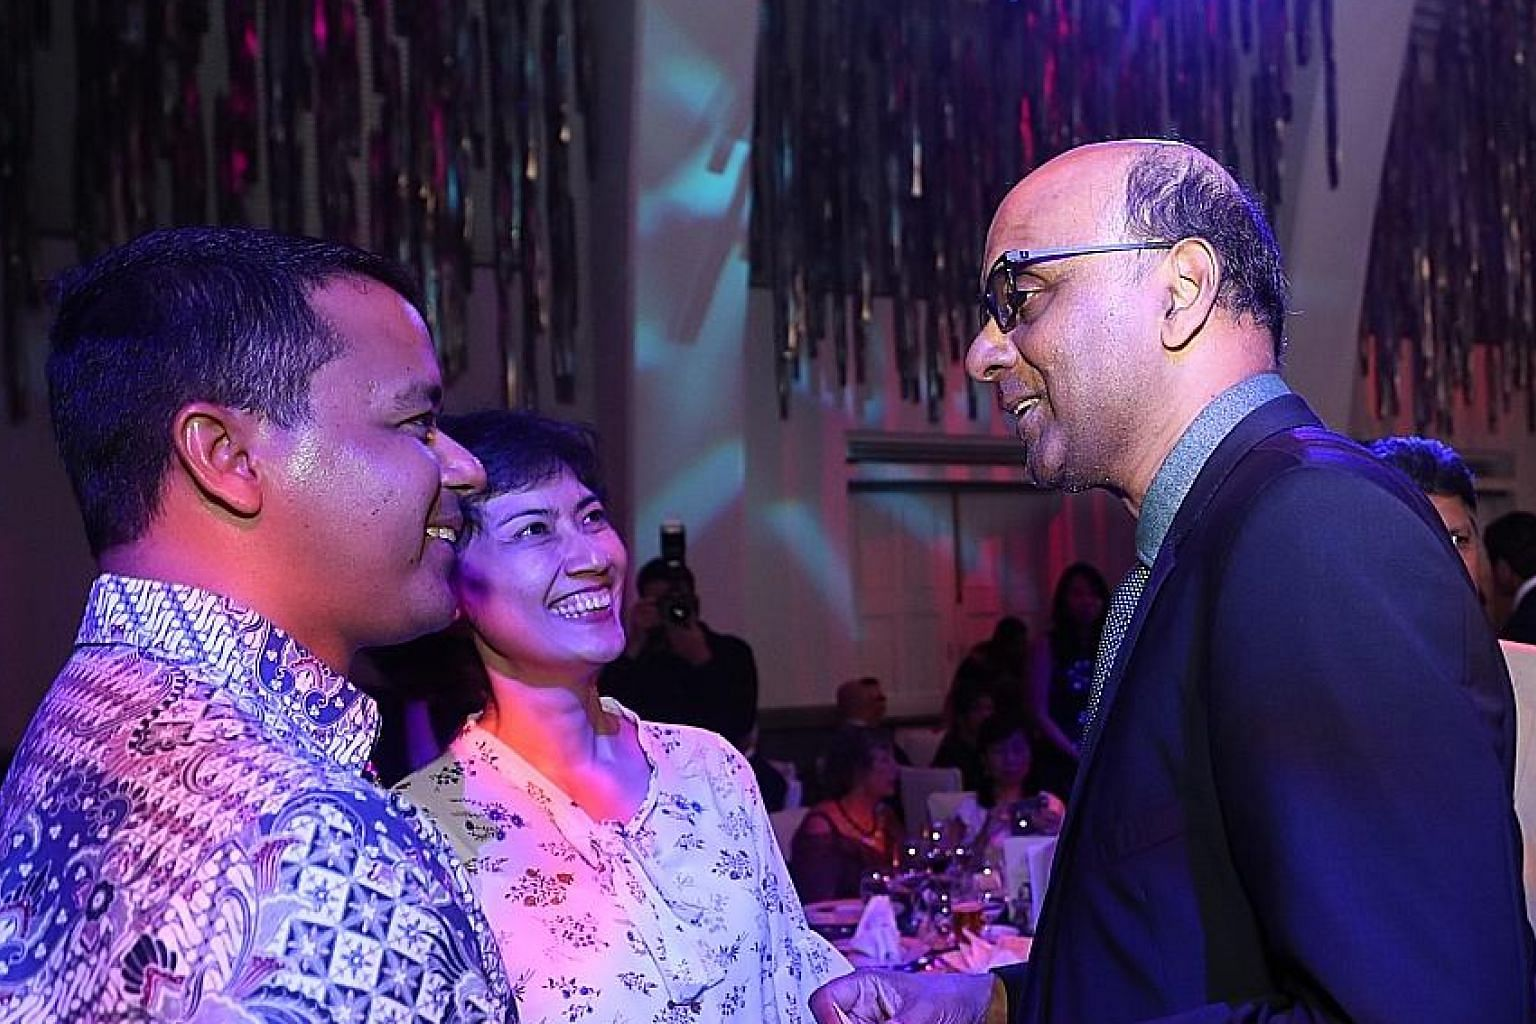 Senior Minister and Coordinating Minister for Social Policies Tharman Shanmugaratnam with Tanjong Pagar GRC MP Joan Pereira and Holland-Bukit Timah GRC MP Christopher De Souza, at the Eurasian Association's fund-raising dinner last night.